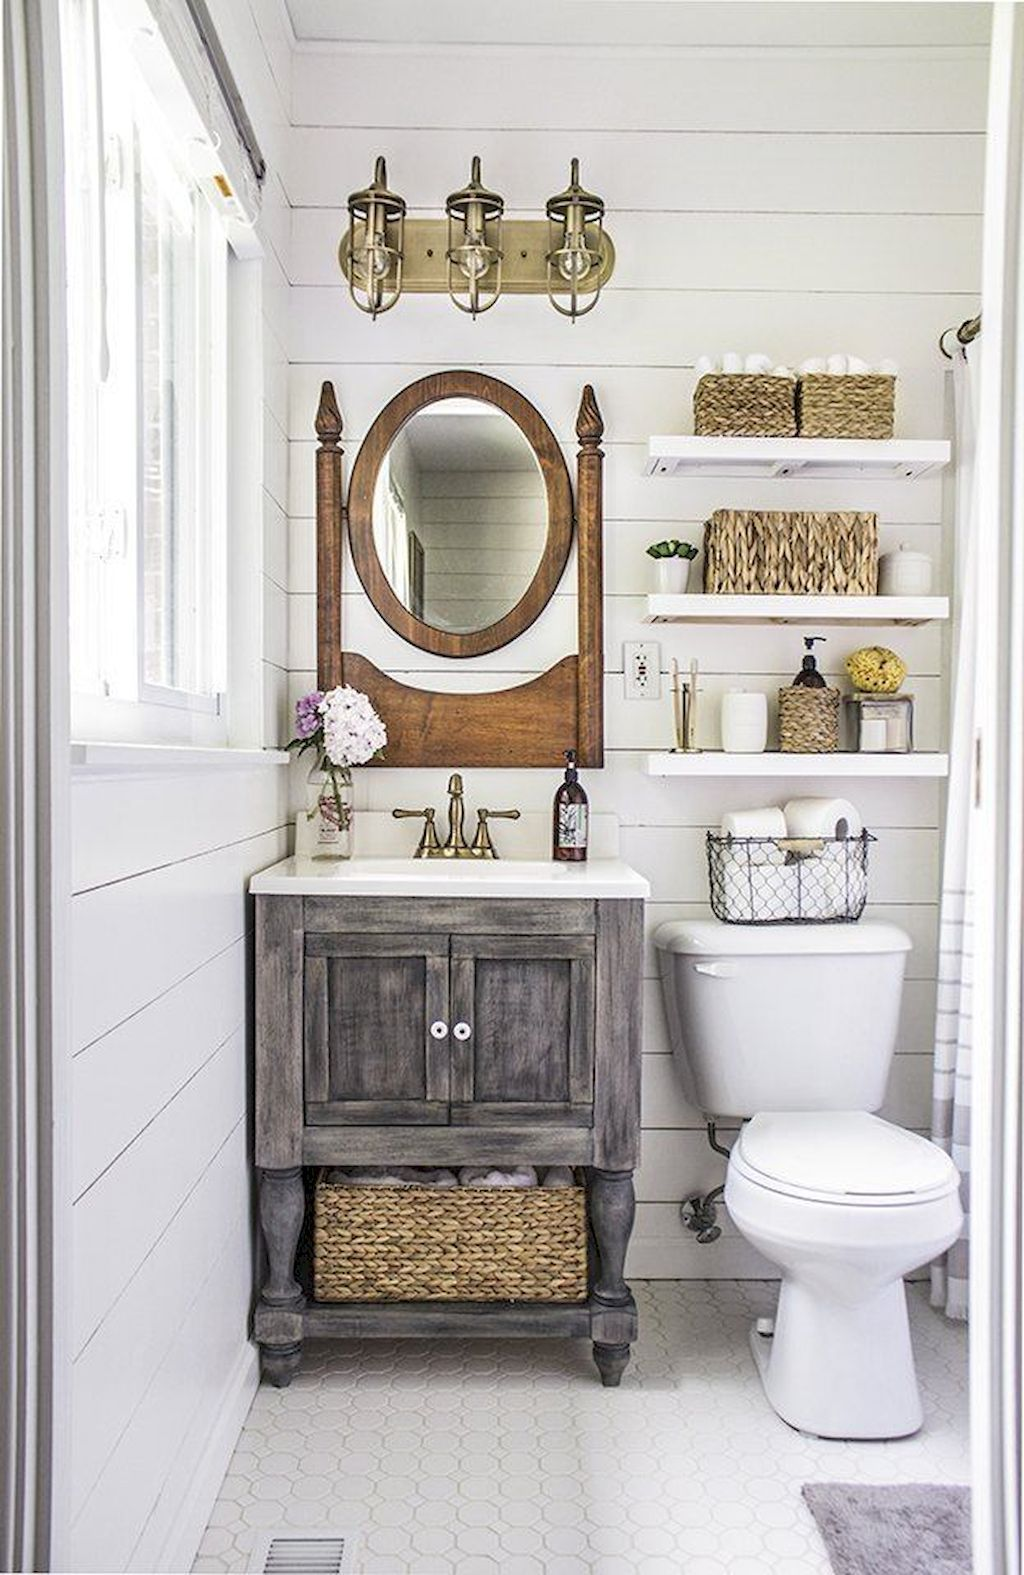 50 Rustic Farmhouse Master Bathroom Remodel Ideas | Pinterest ...